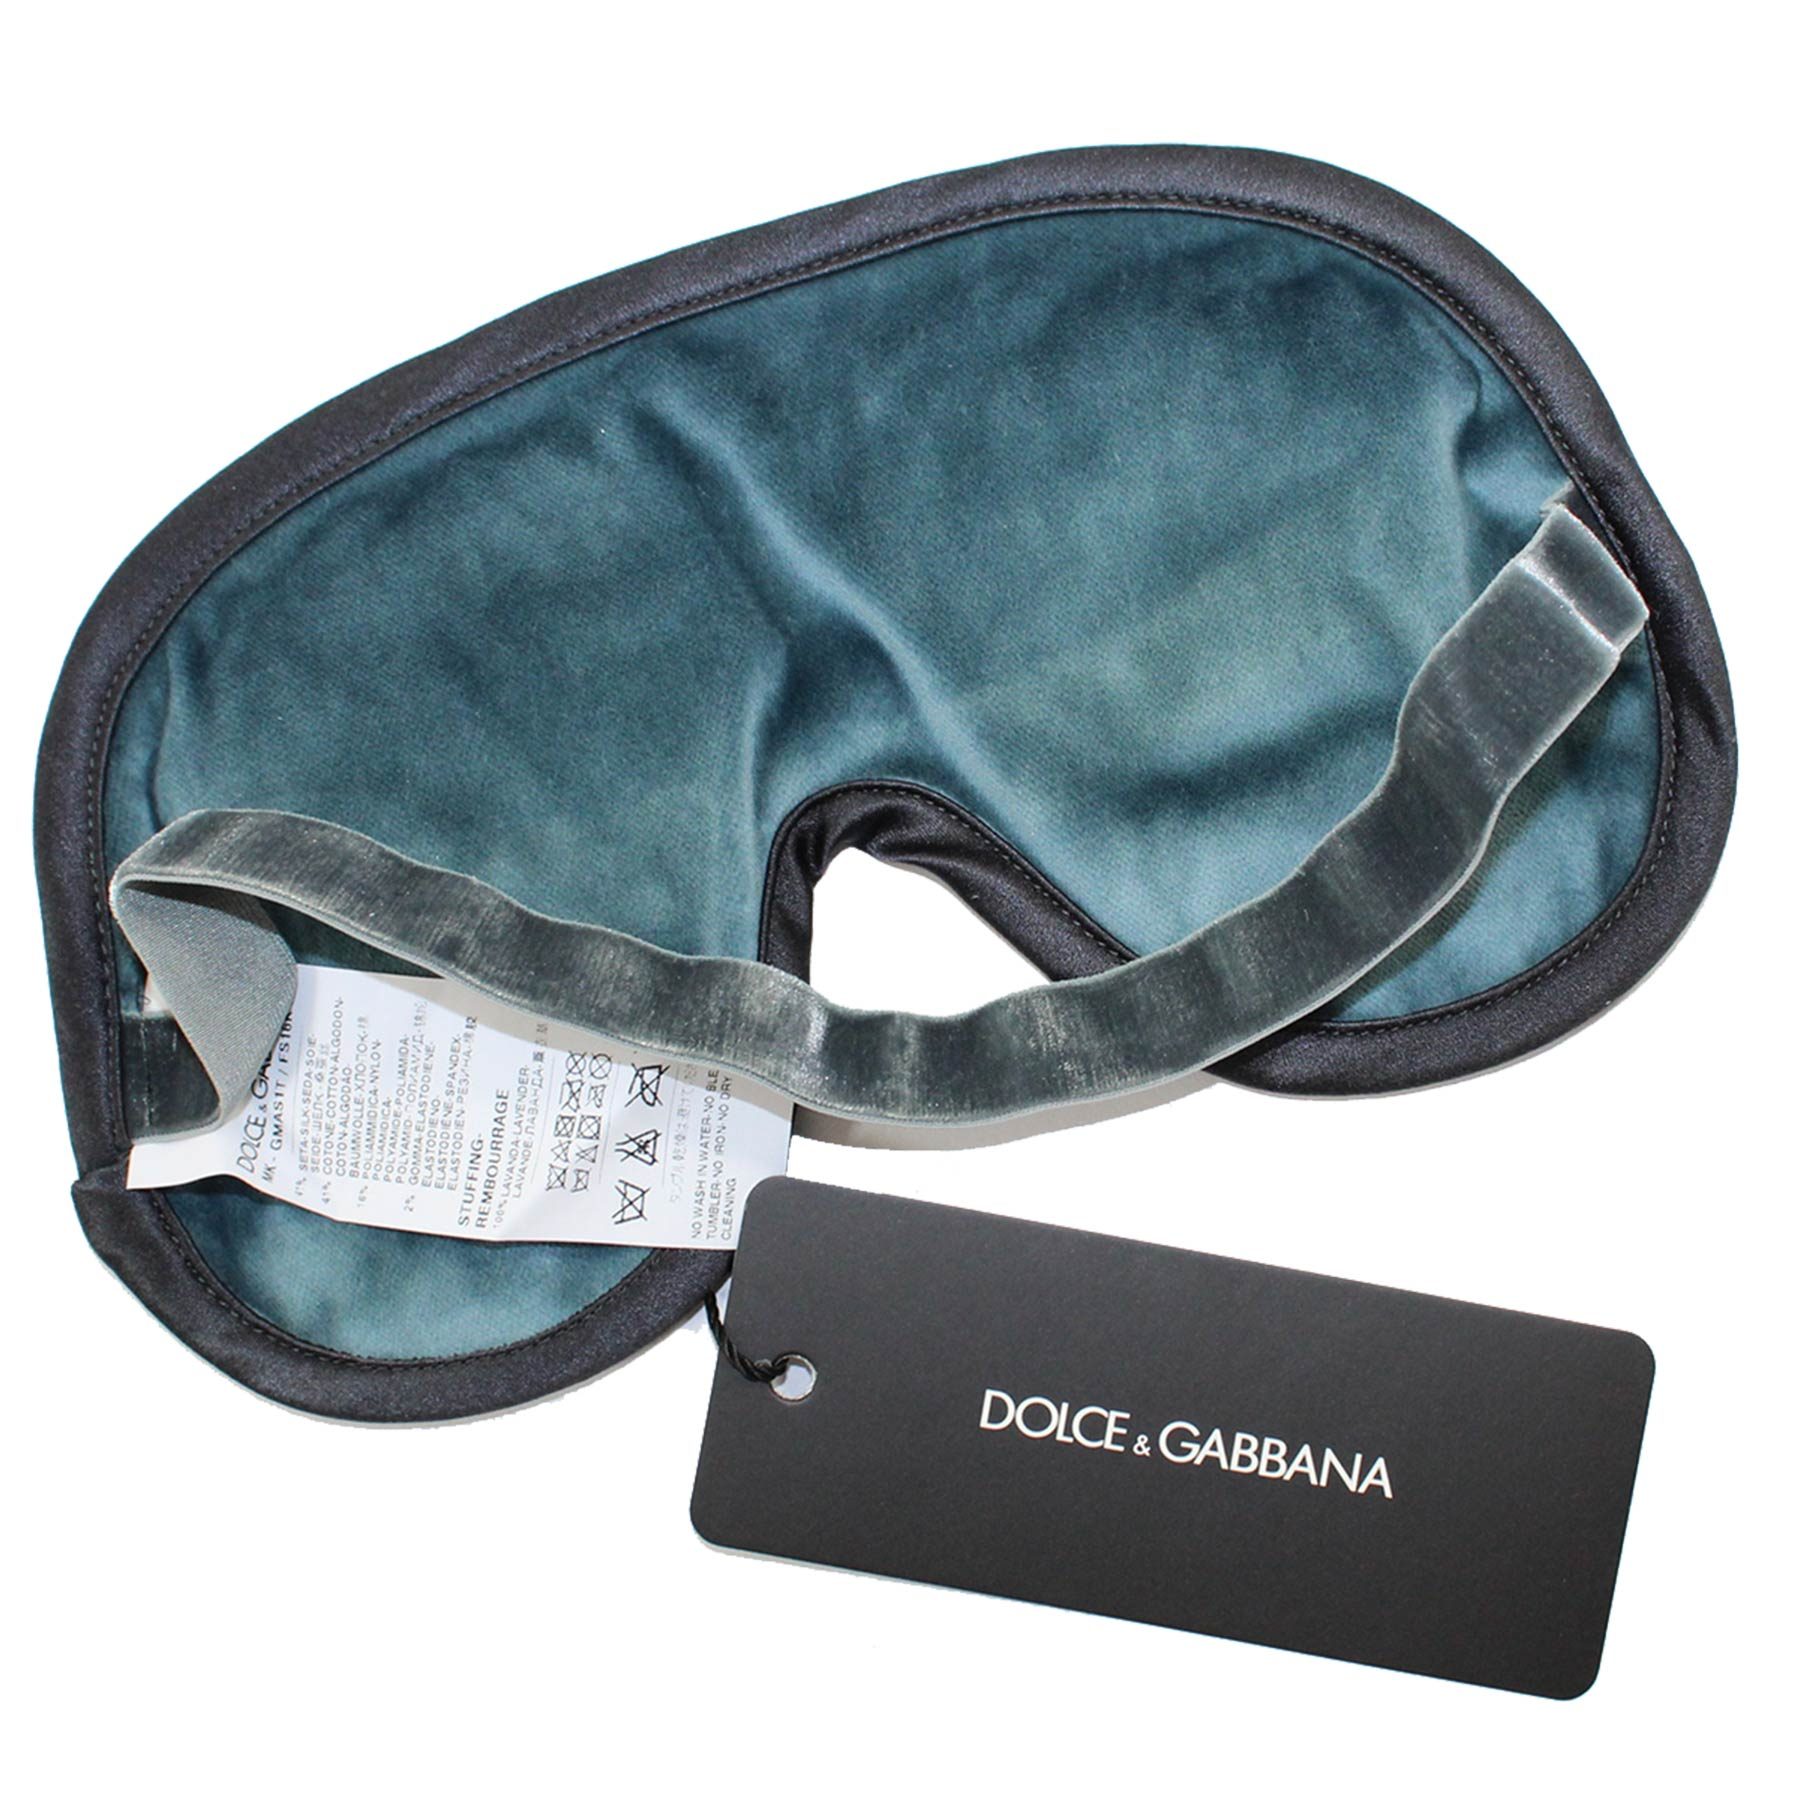 Dolce & Gabbana Silk Eye Shades Gray Floral